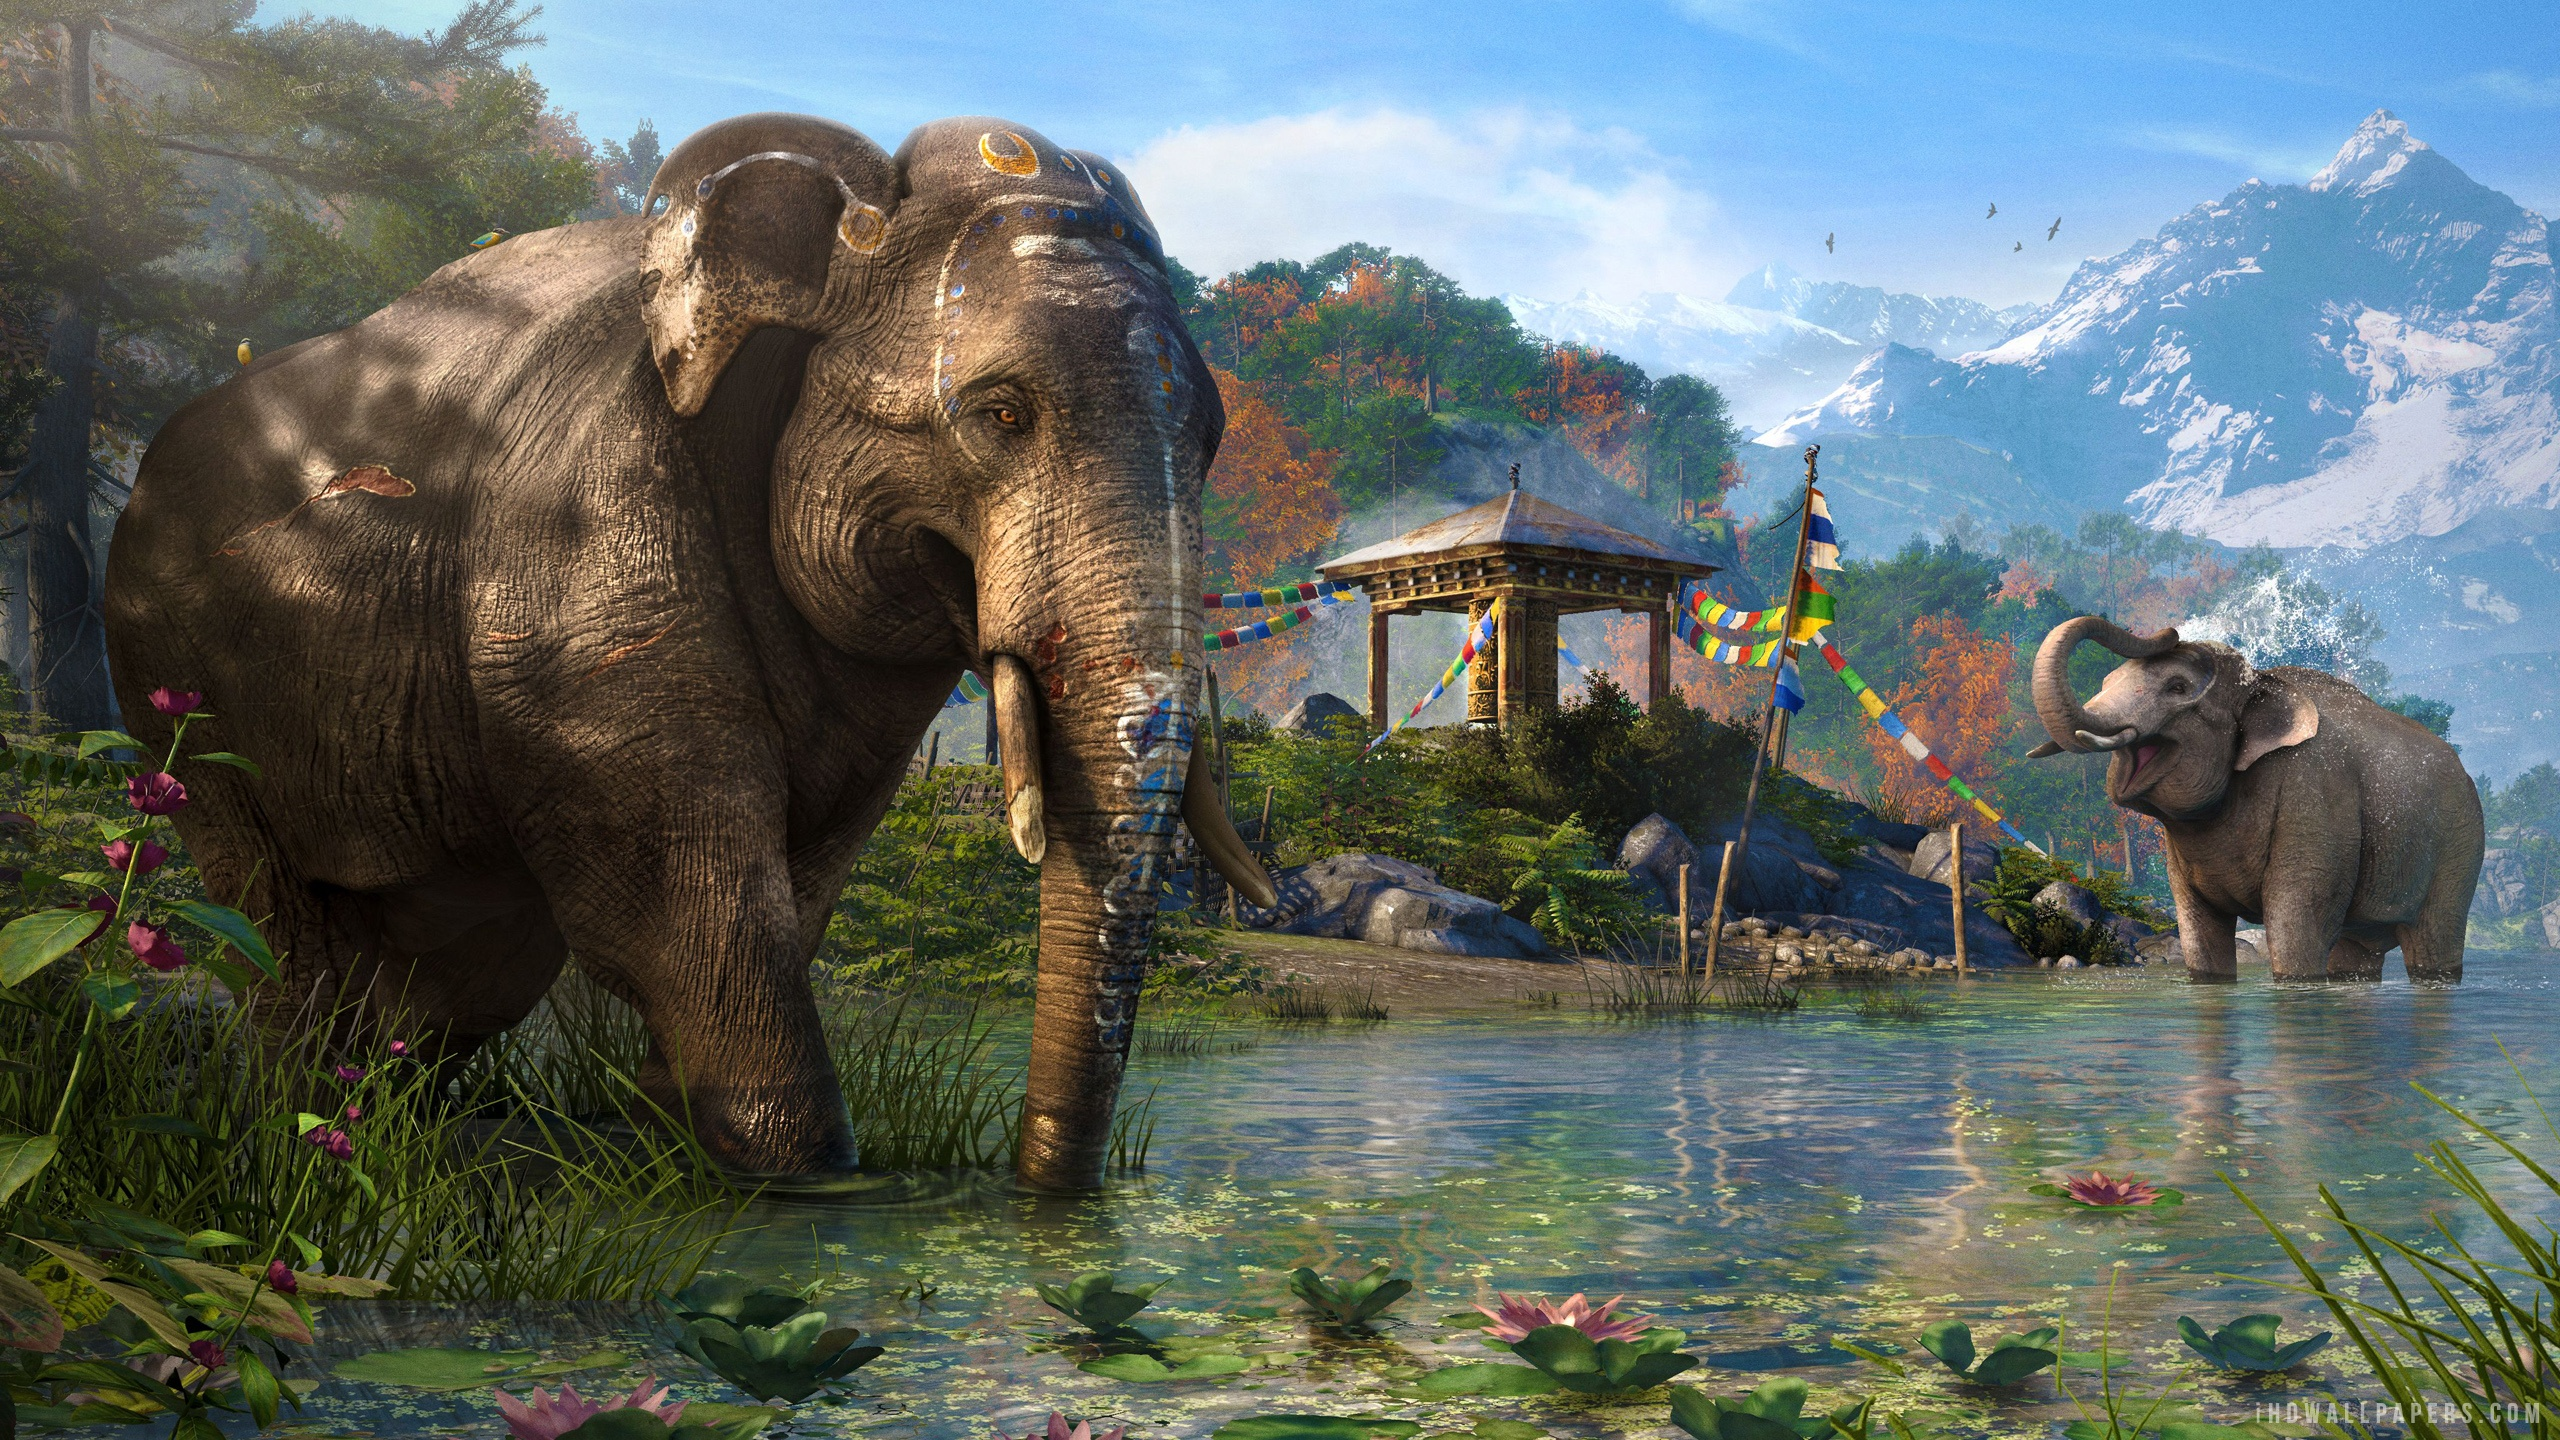 Free Download Far Cry 4 Elephant Vista Wallpaper 2560x1440 For